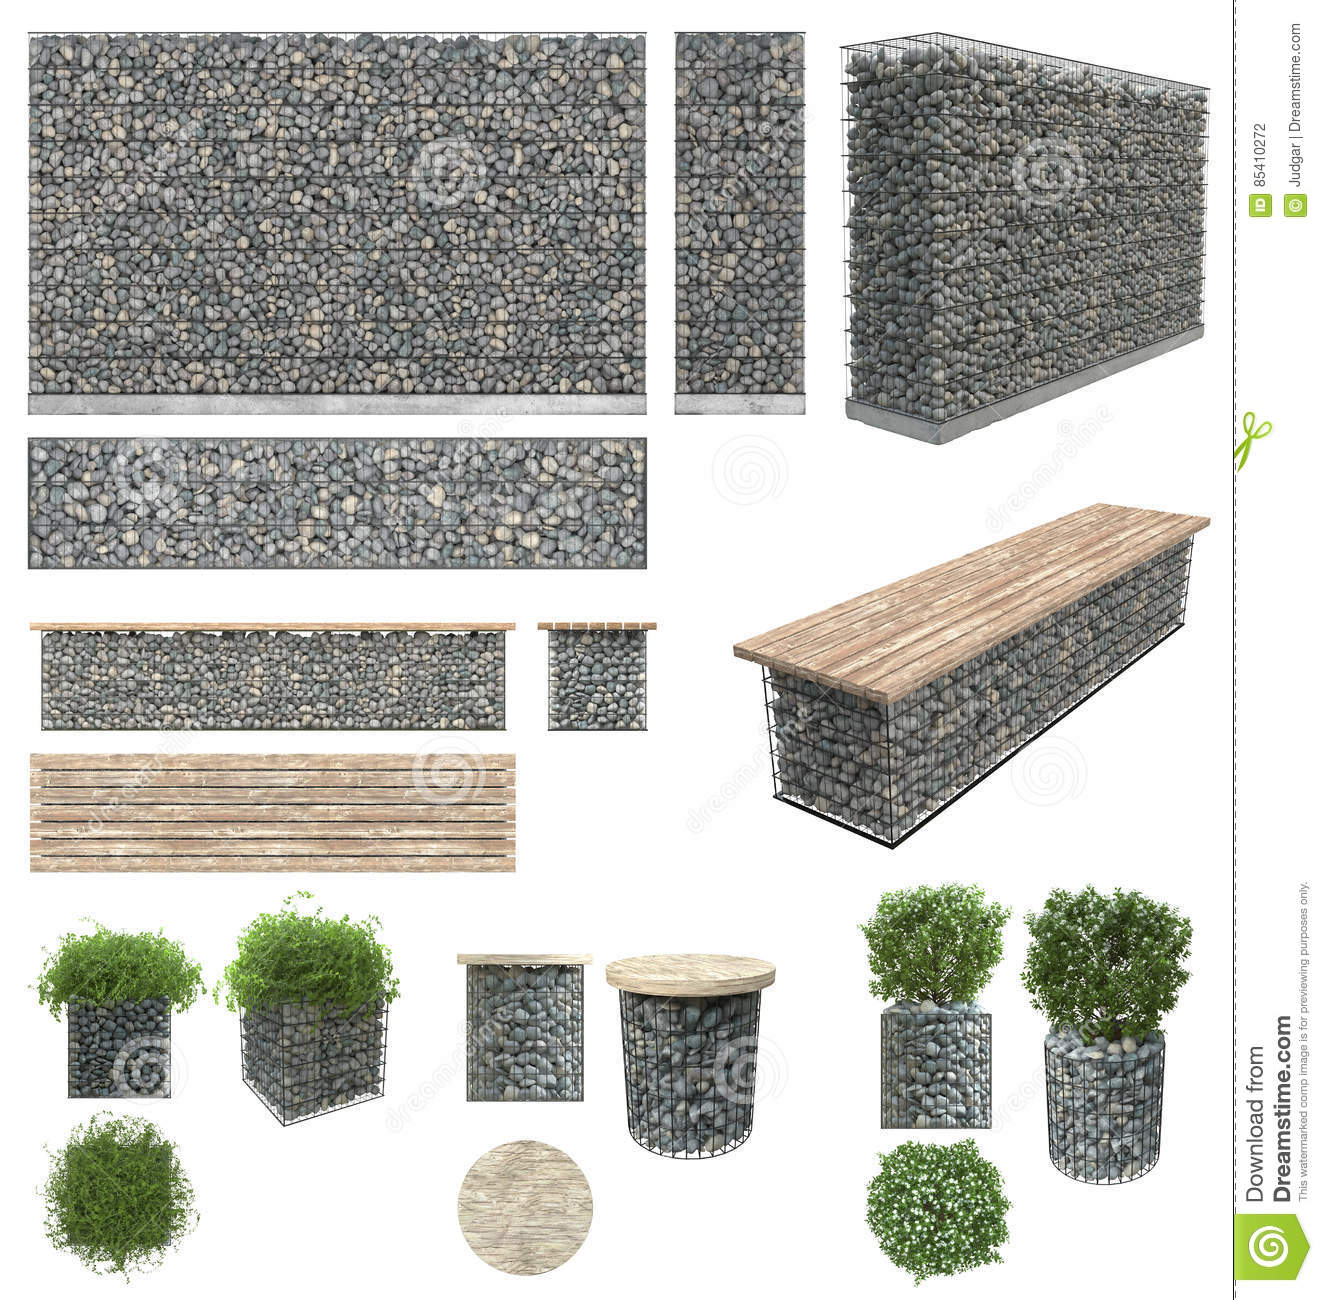 gabion pierres dans le grillage mur banc pots de fleur avec des usines des roches et grilles. Black Bedroom Furniture Sets. Home Design Ideas